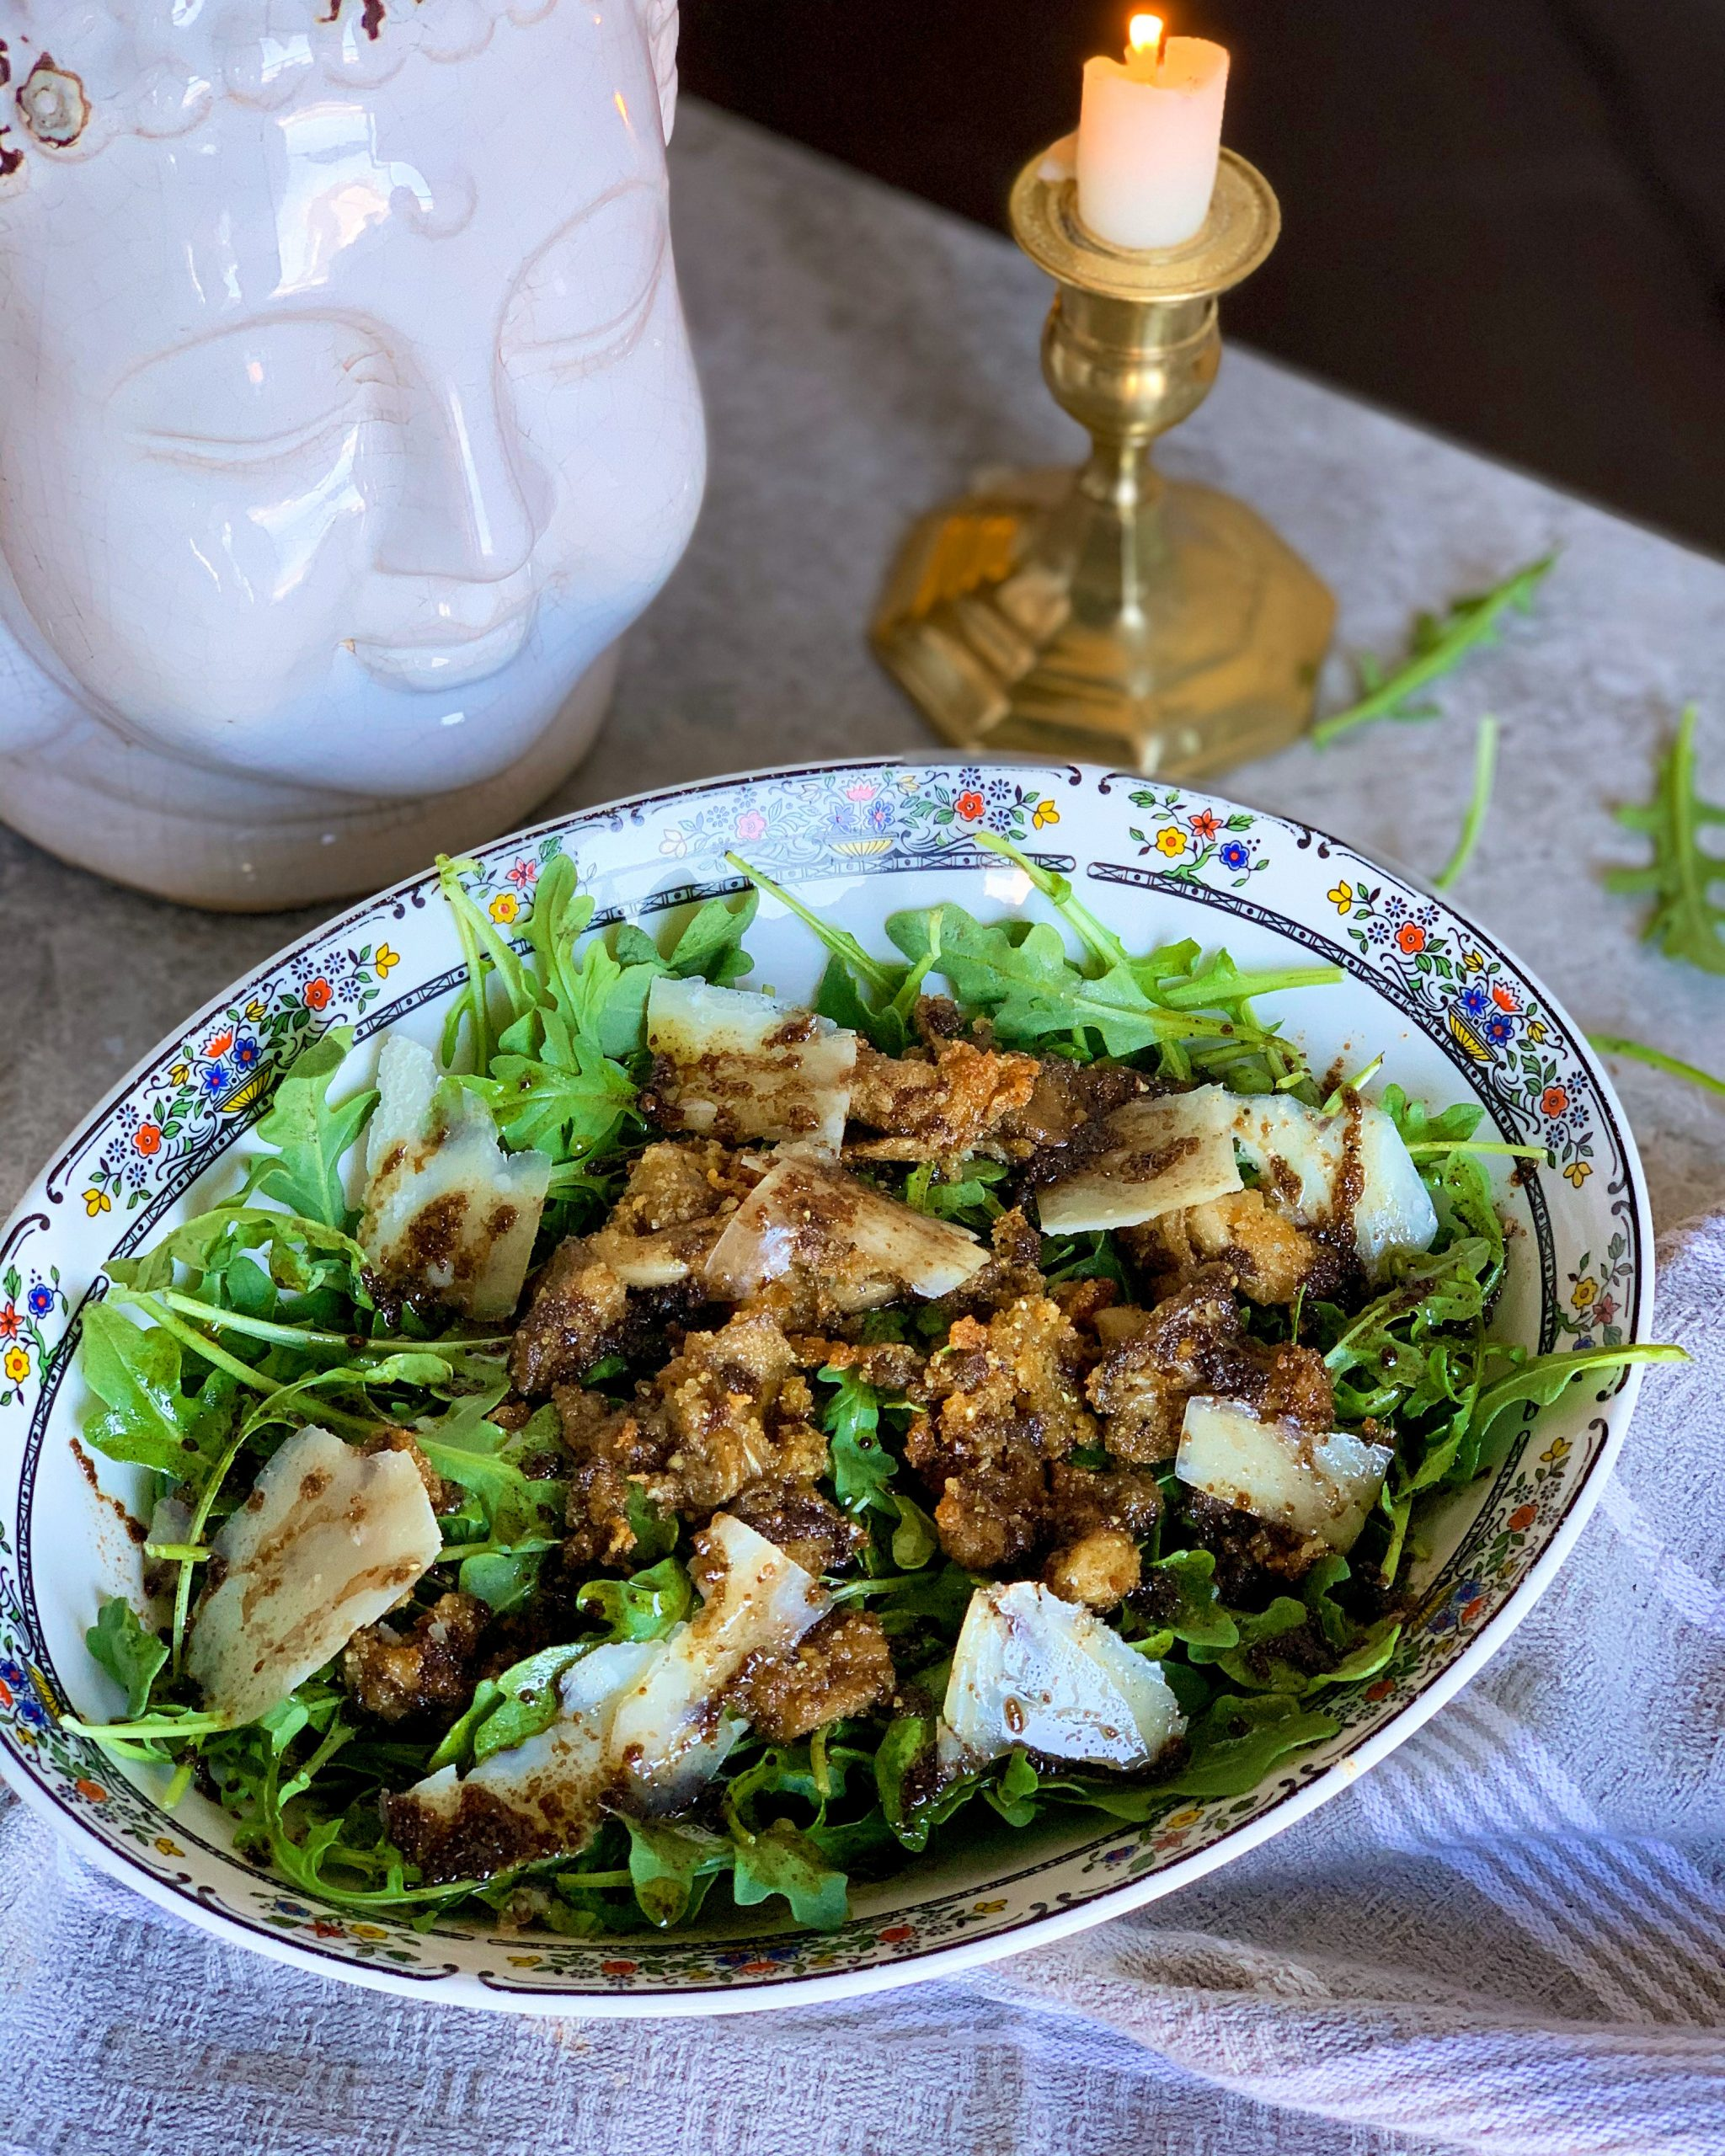 Funghi Assoluti (Warm Mushroom and Arugula Salad)